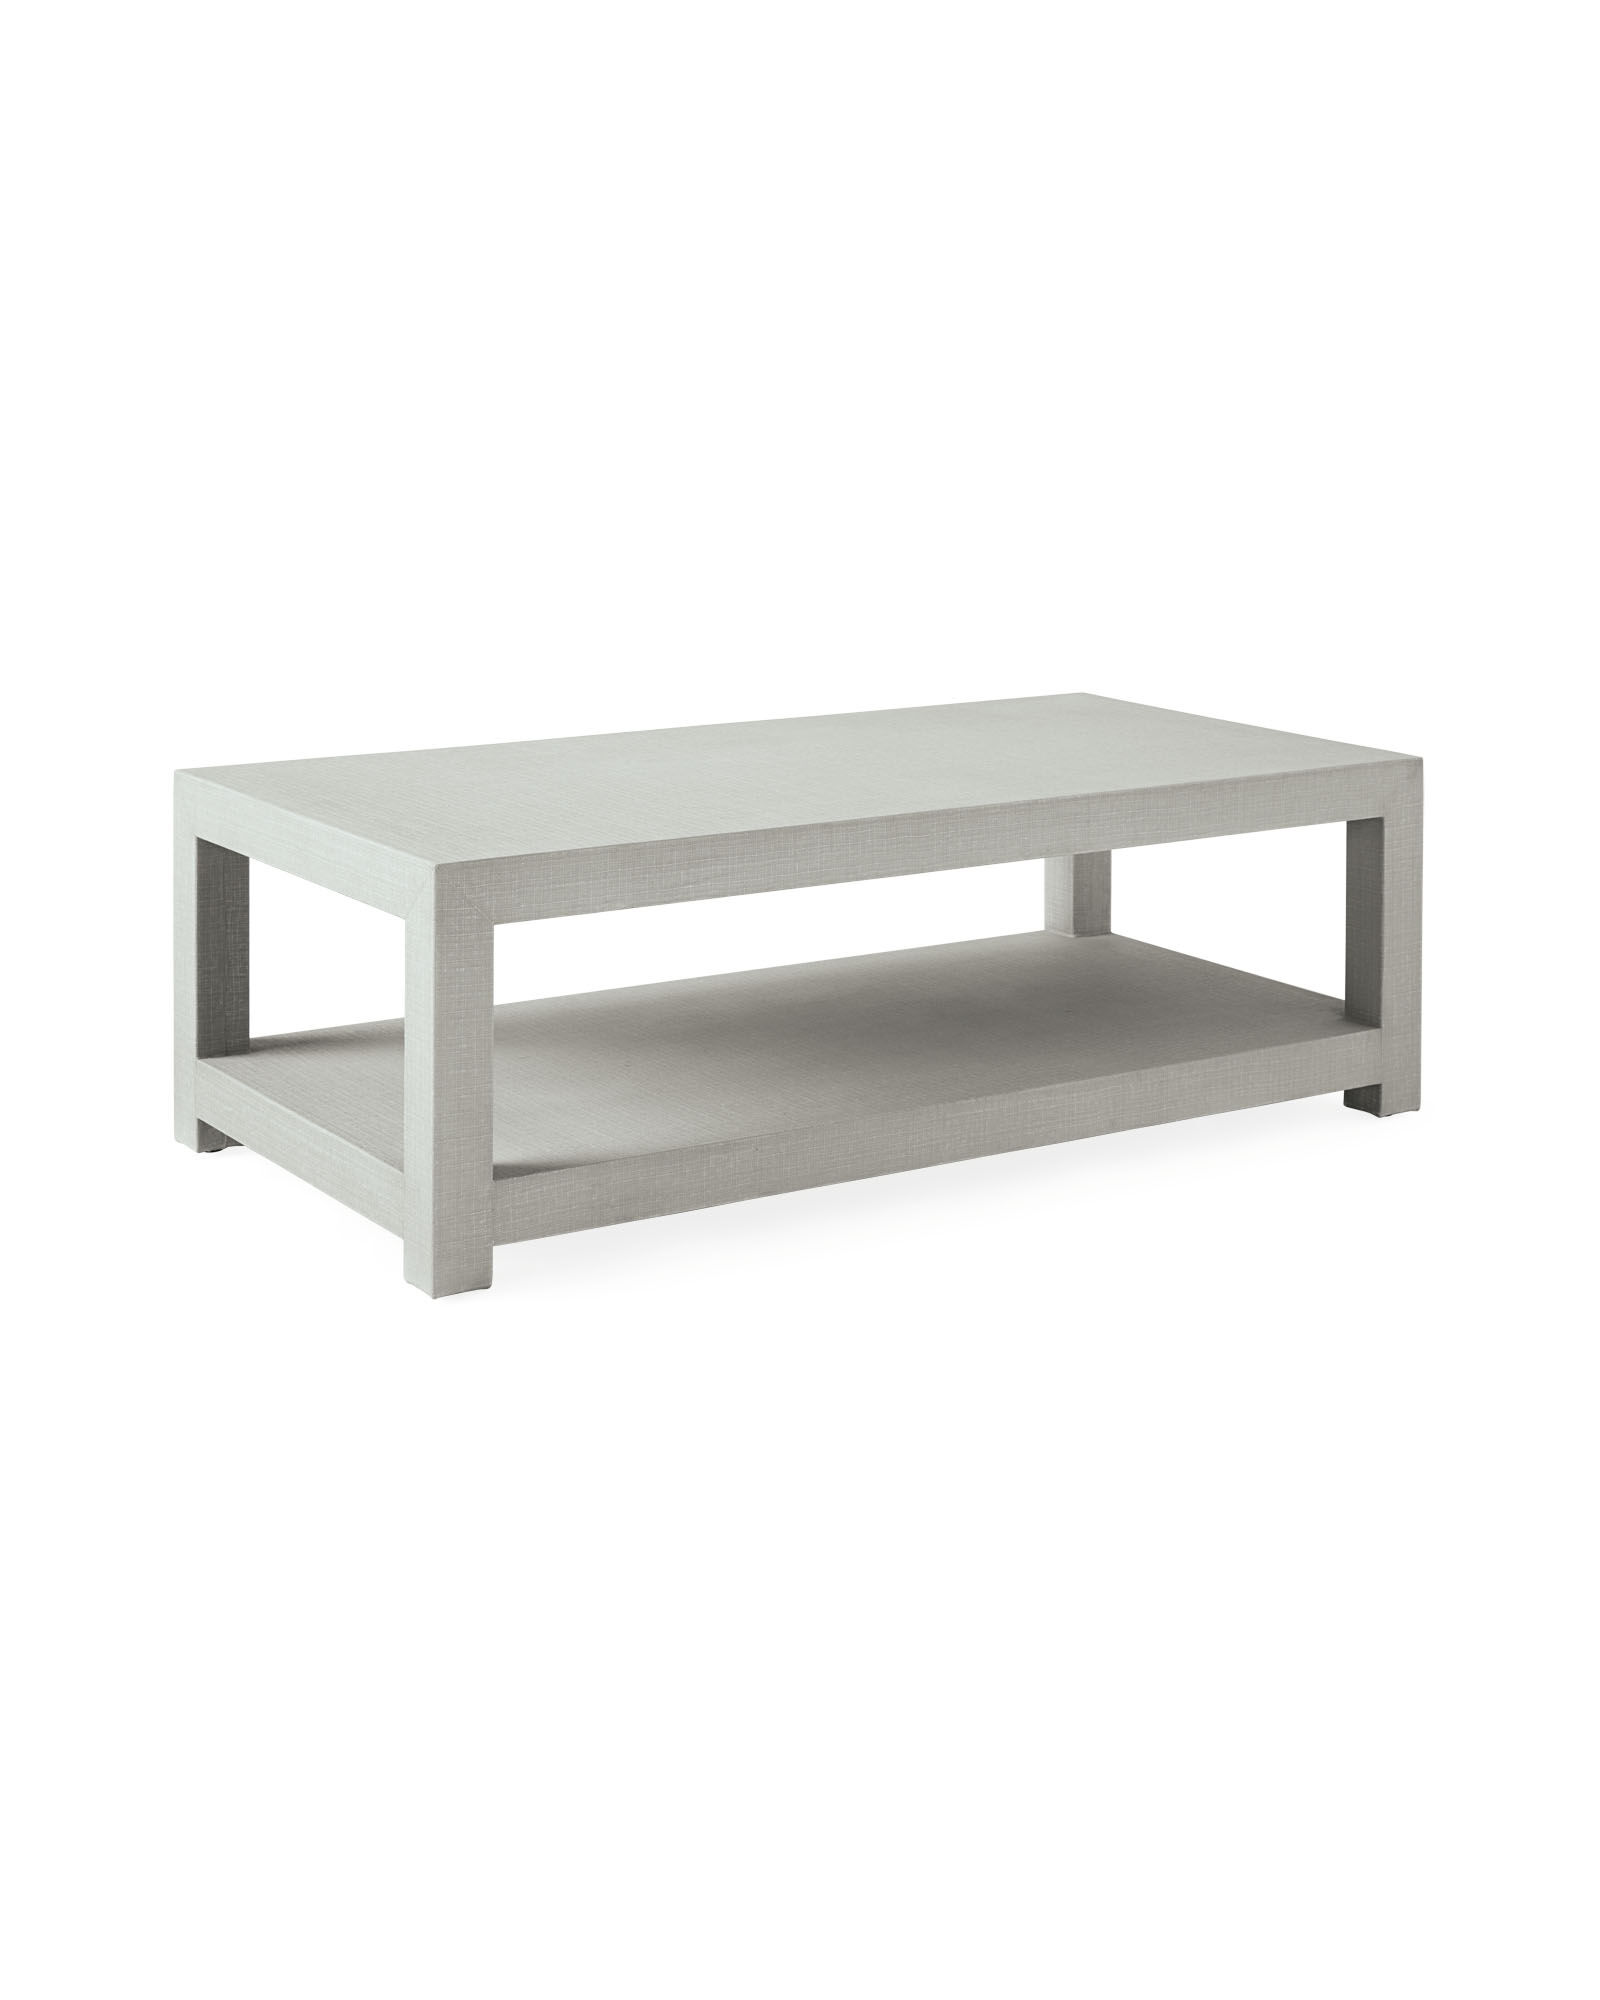 Driftway Coffee Table, Dove